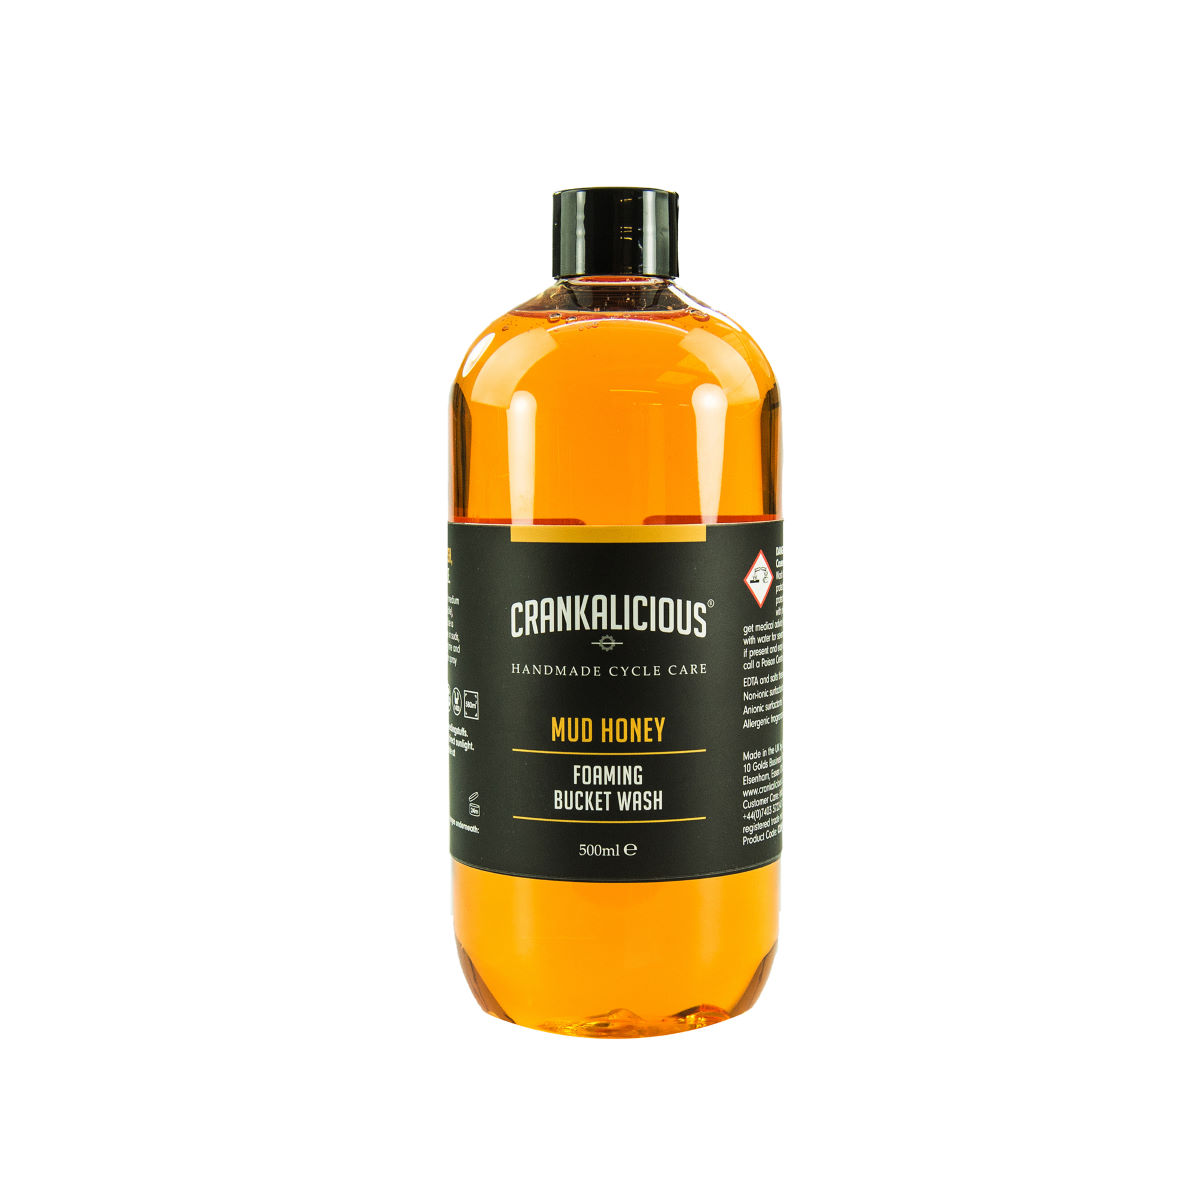 Crankalicious Mud Honey 500ml Foaming Bucket Wash  One Size - Productos de limpieza